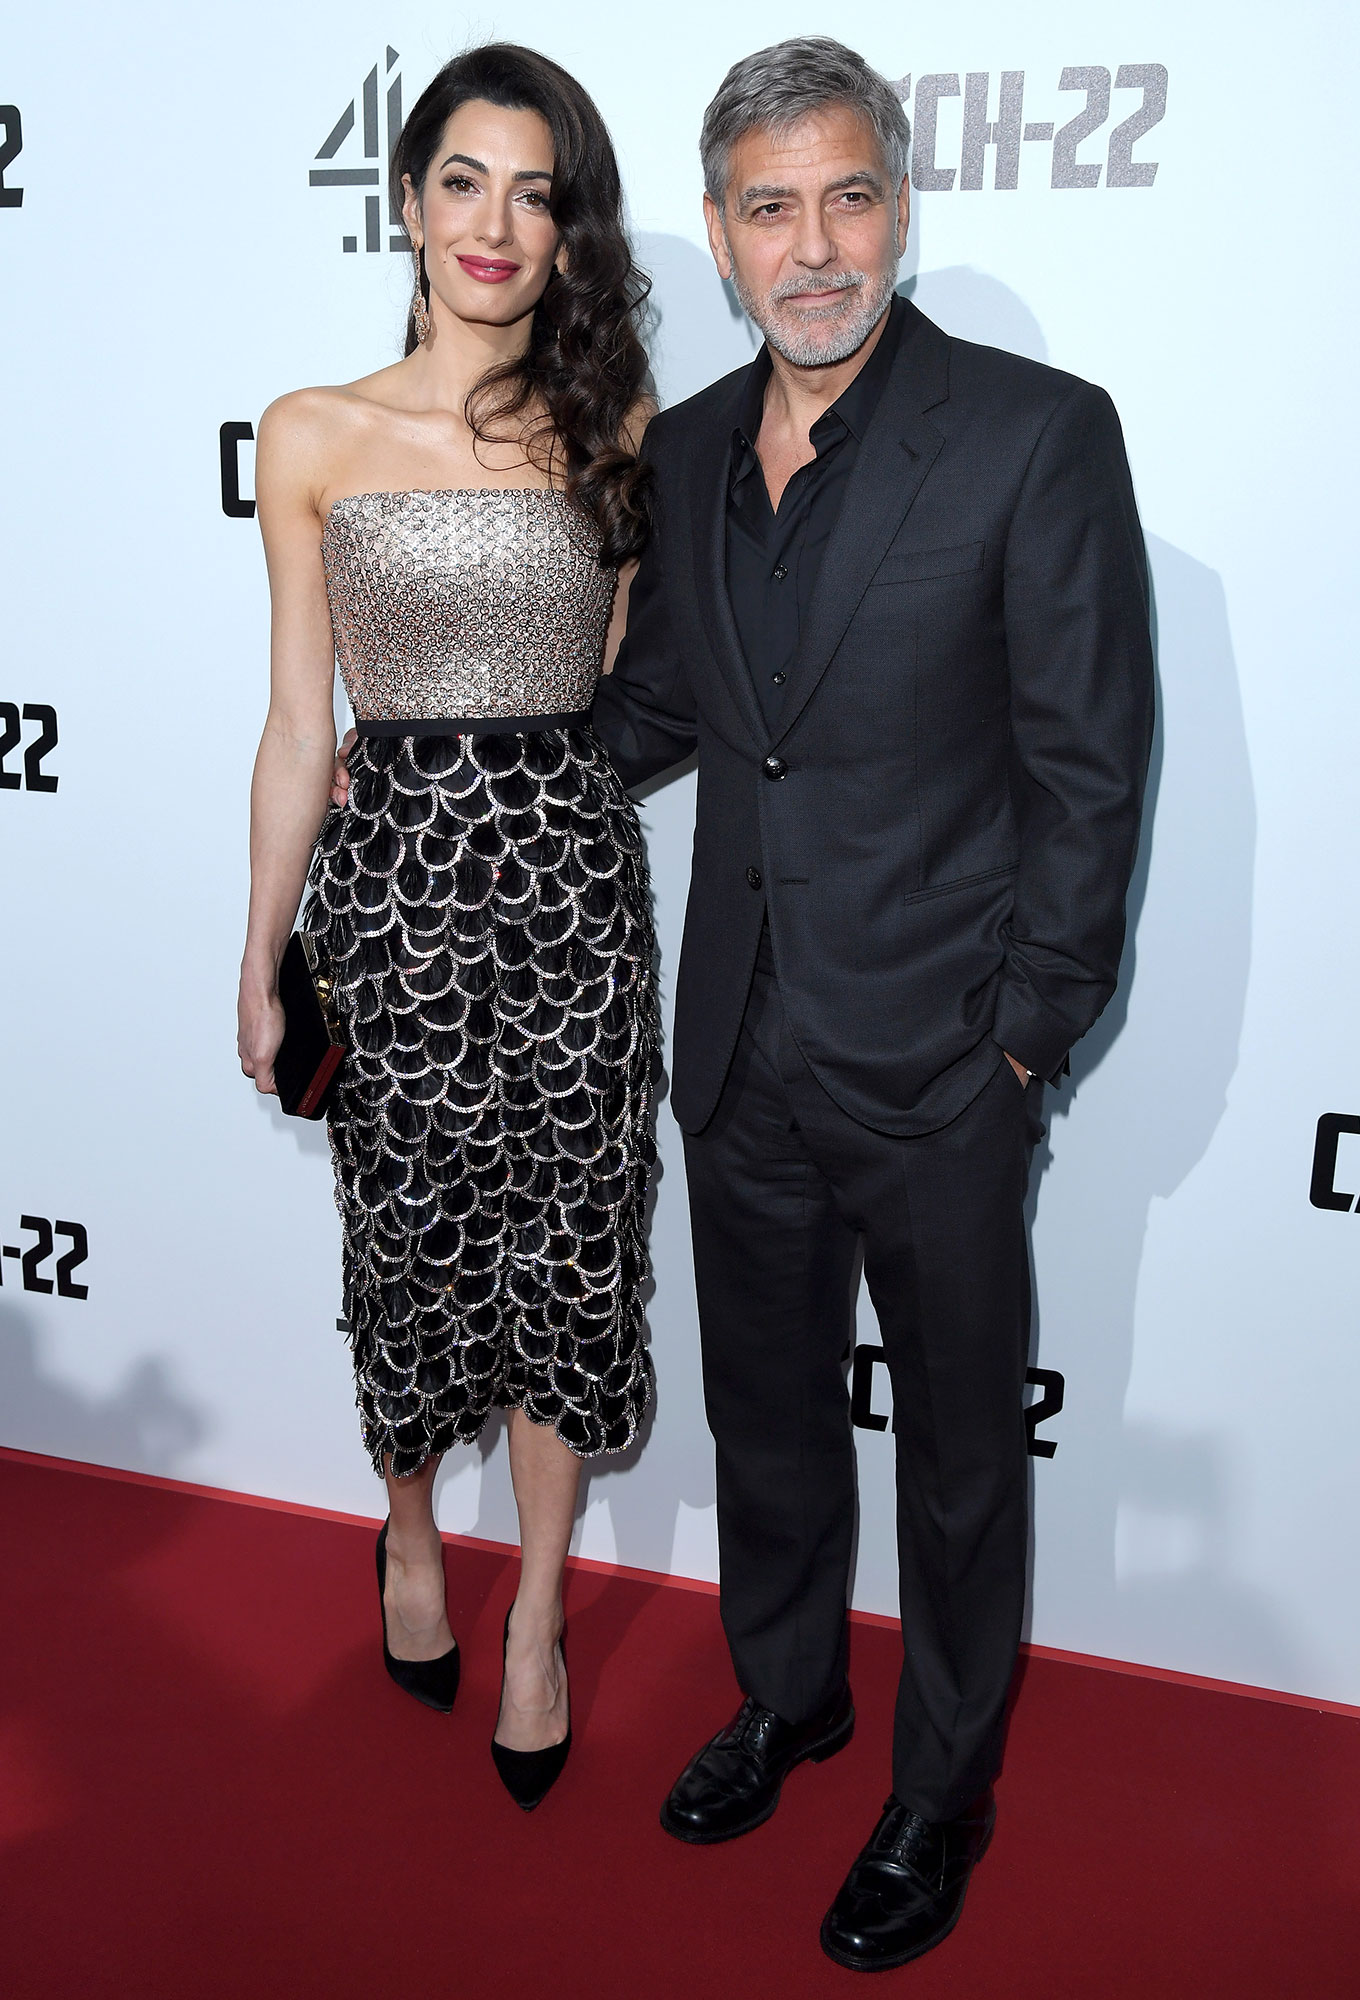 """Amal Clooney and George Clooney Sparkly Strapless Mididress - LONDON, ENGLAND – MAY 15: Amal Clooney and George Clooney attend the """"Catch 22"""" UK premiere at the Vue Westfield on May 15, 2019 in London, United Kingdom. (Photo by Karwai Tang/WireImage)"""